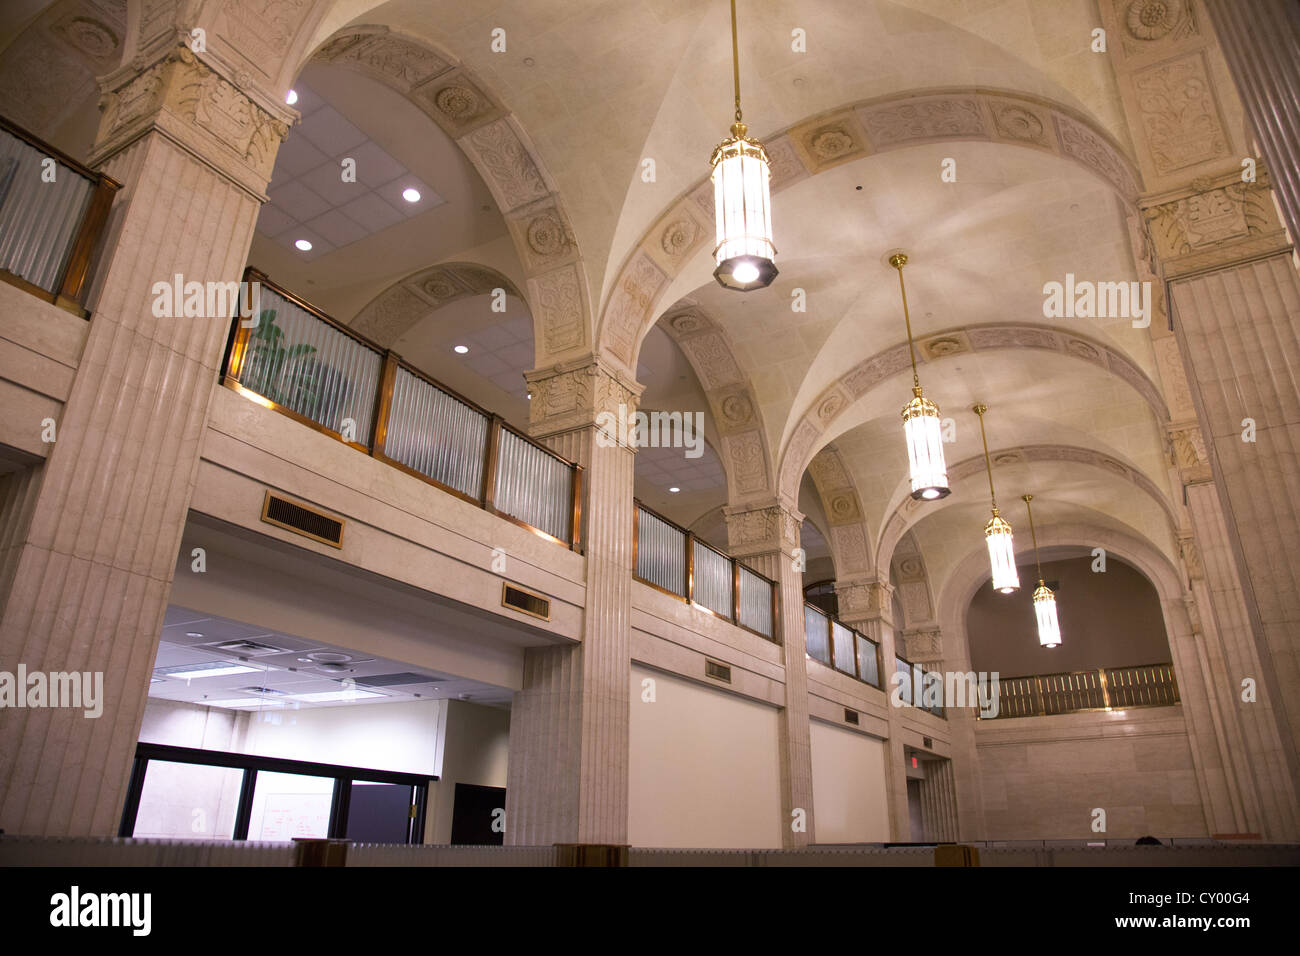 Art Deco Bank.Ceiling Of Vintage Art Deco Bank Interior Stock Photo